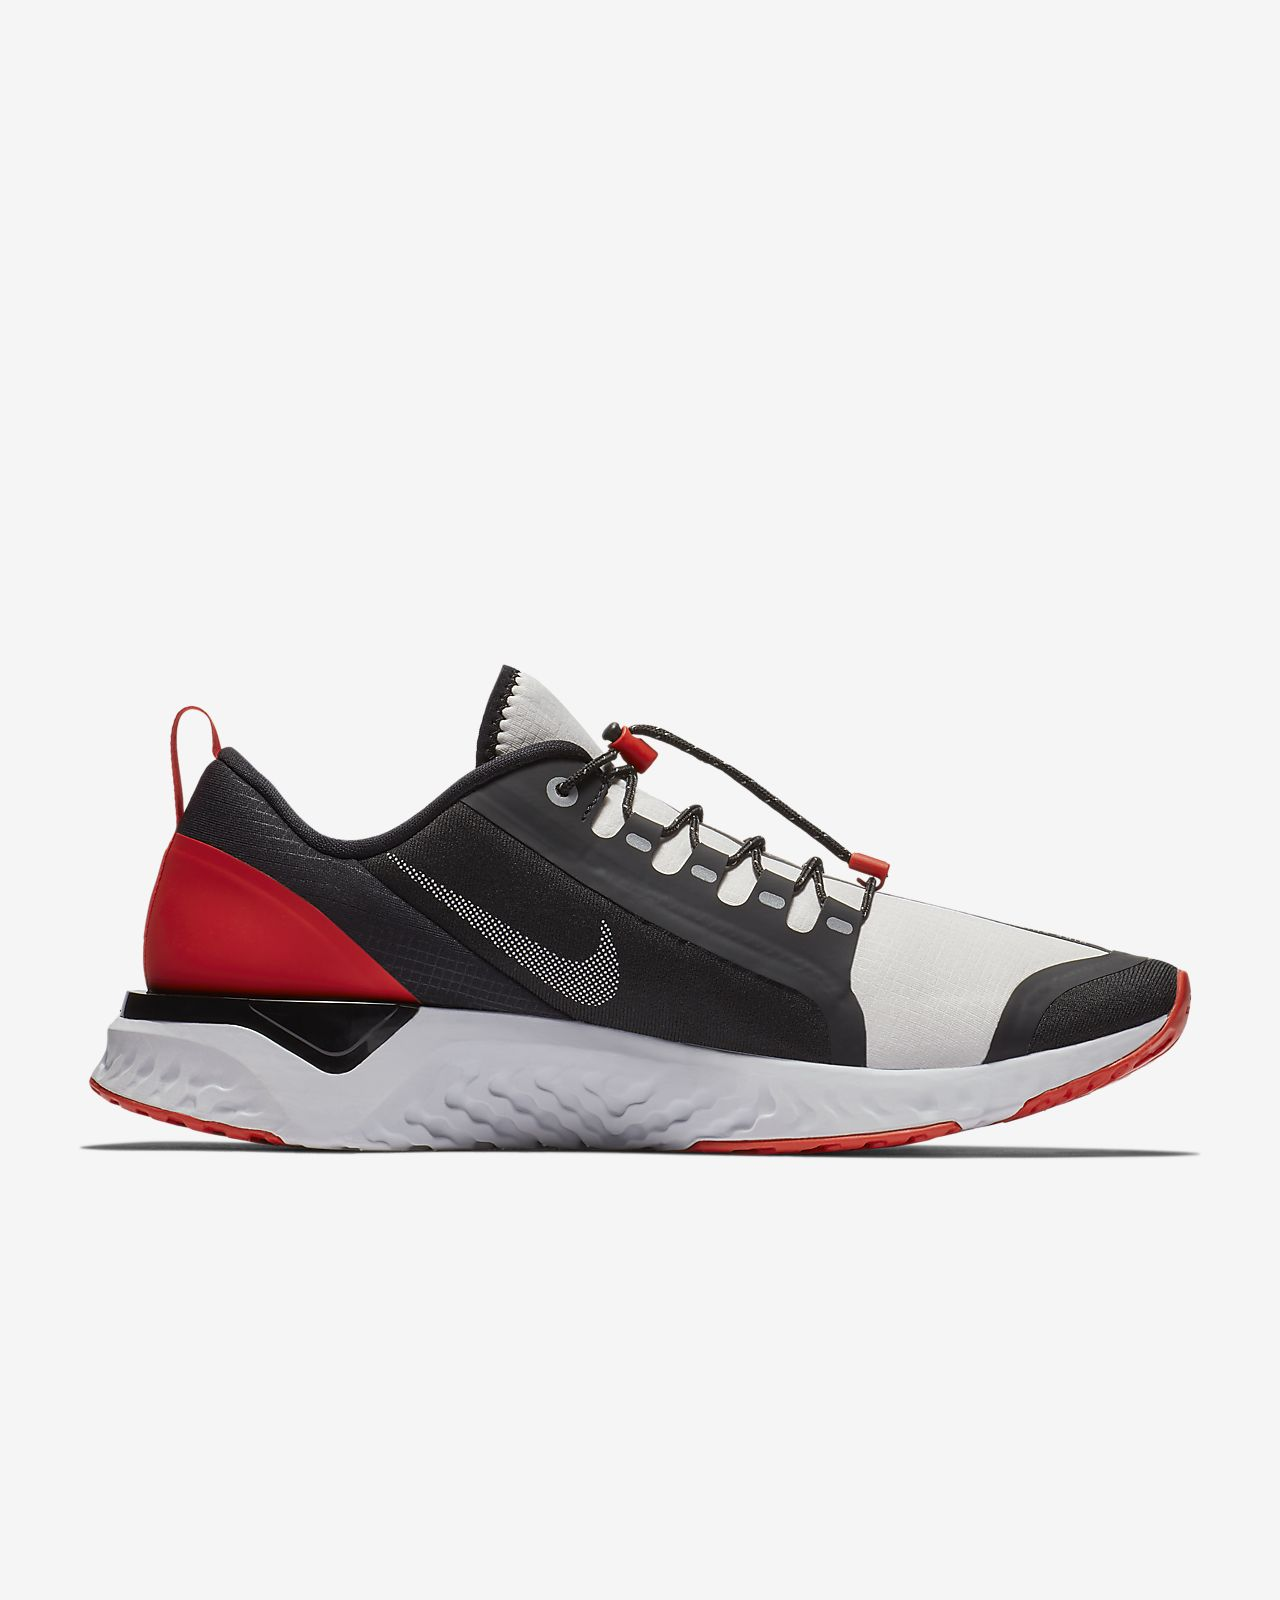 separation shoes 11aba ad763 ... Męskie buty do biegania Nike Odyssey React Shield Water-Repellent